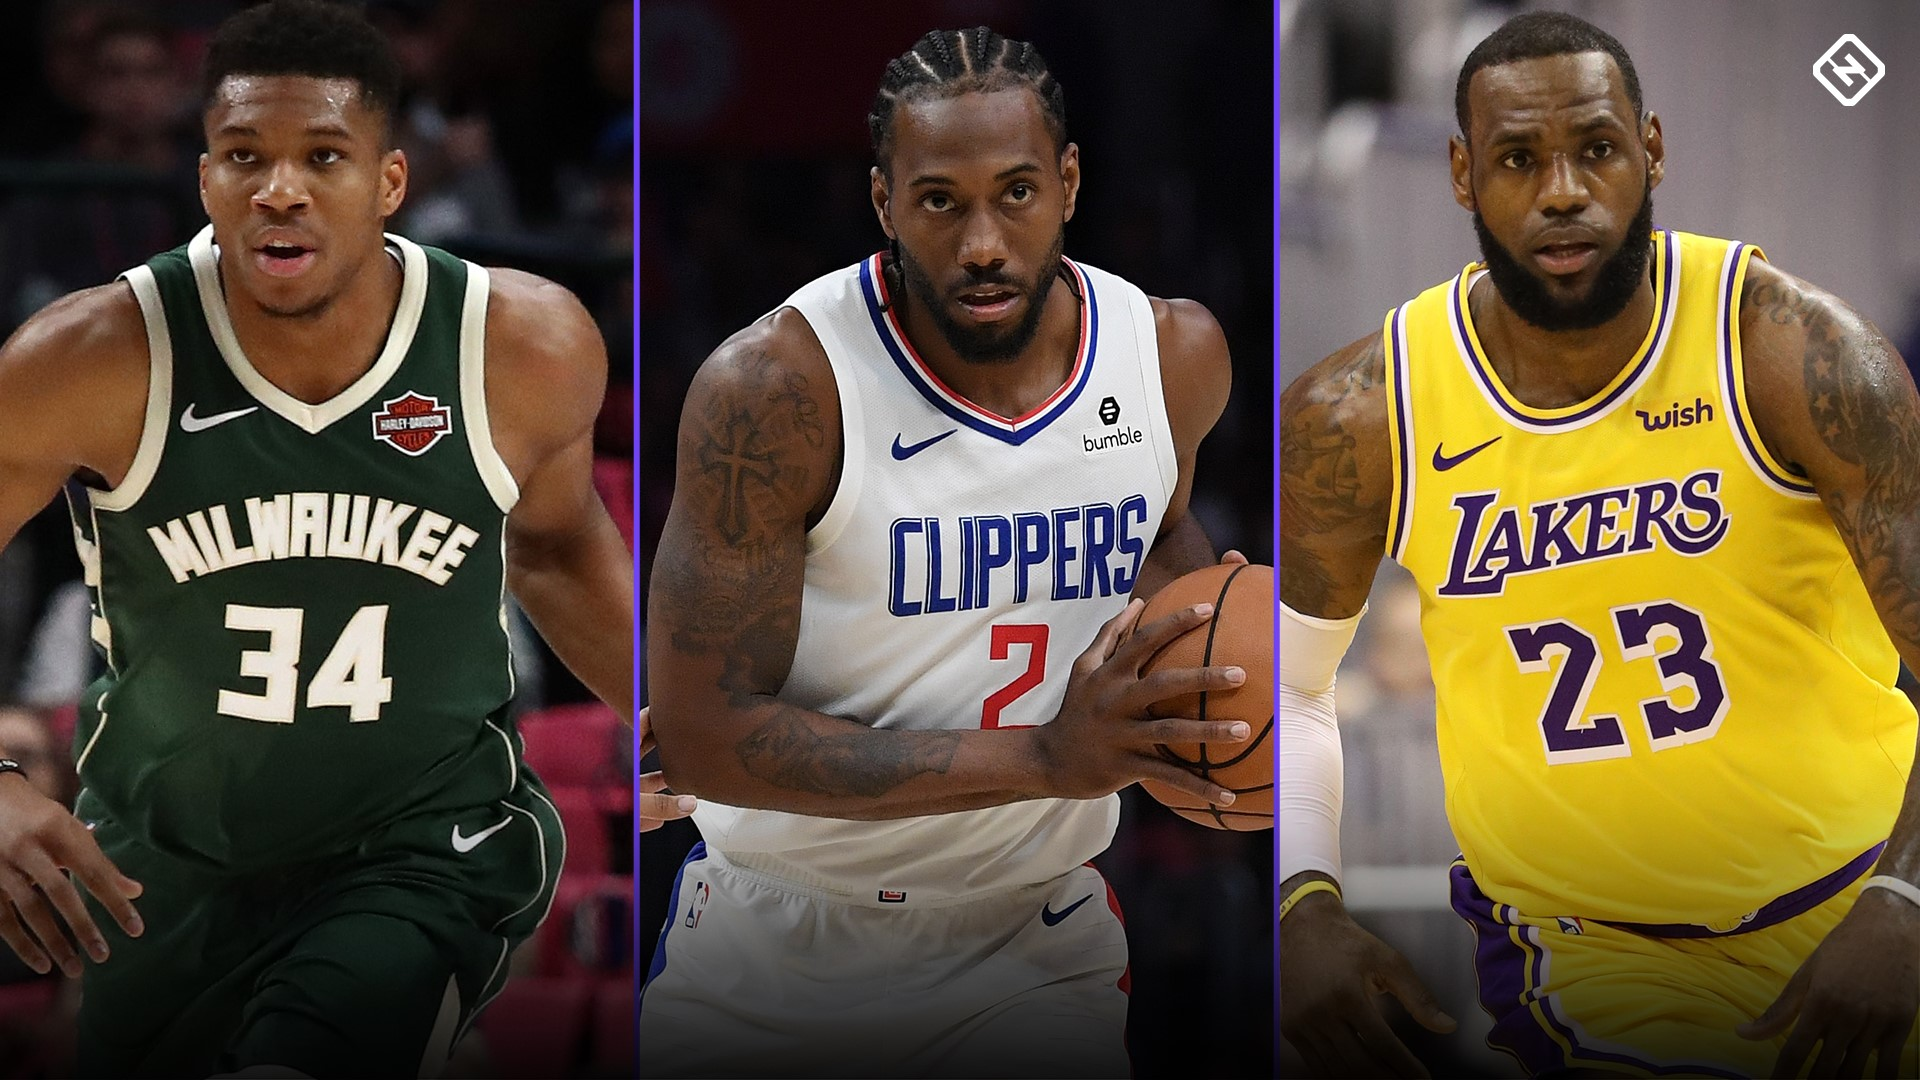 NBA playoff bracket 2020: Updated standings, seeds & Round 1 projections in Orlando